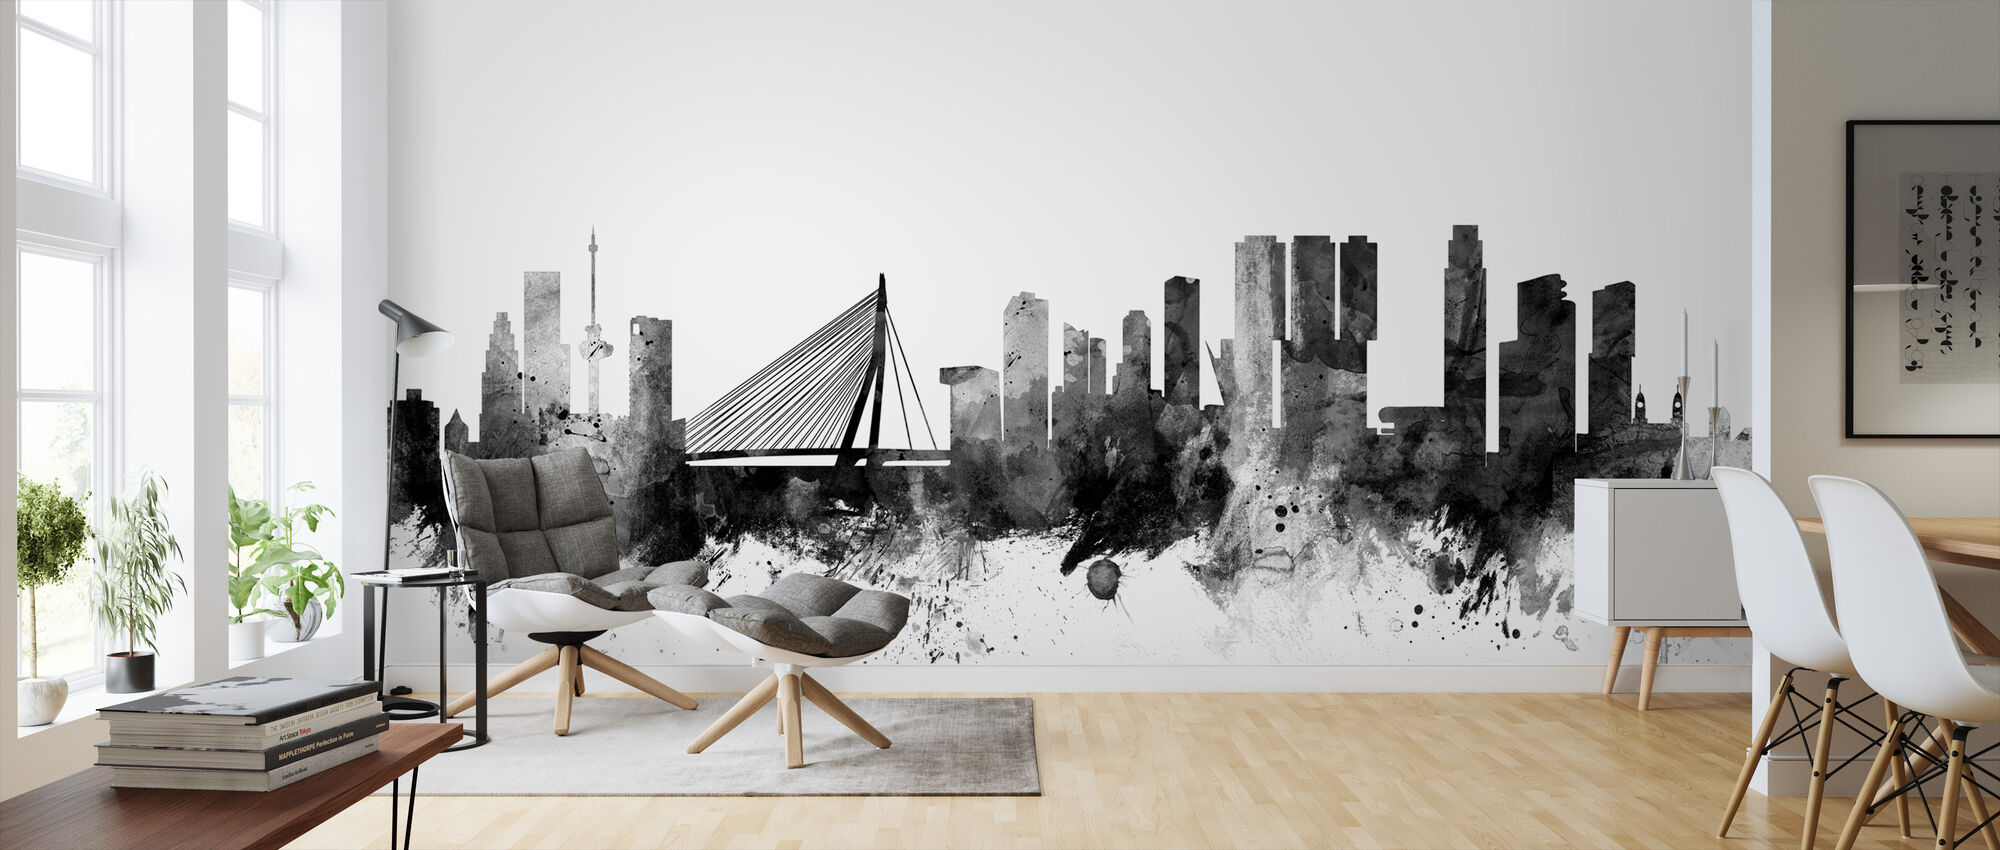 Rotterdam Skyline Black - Wallpaper - Living Room